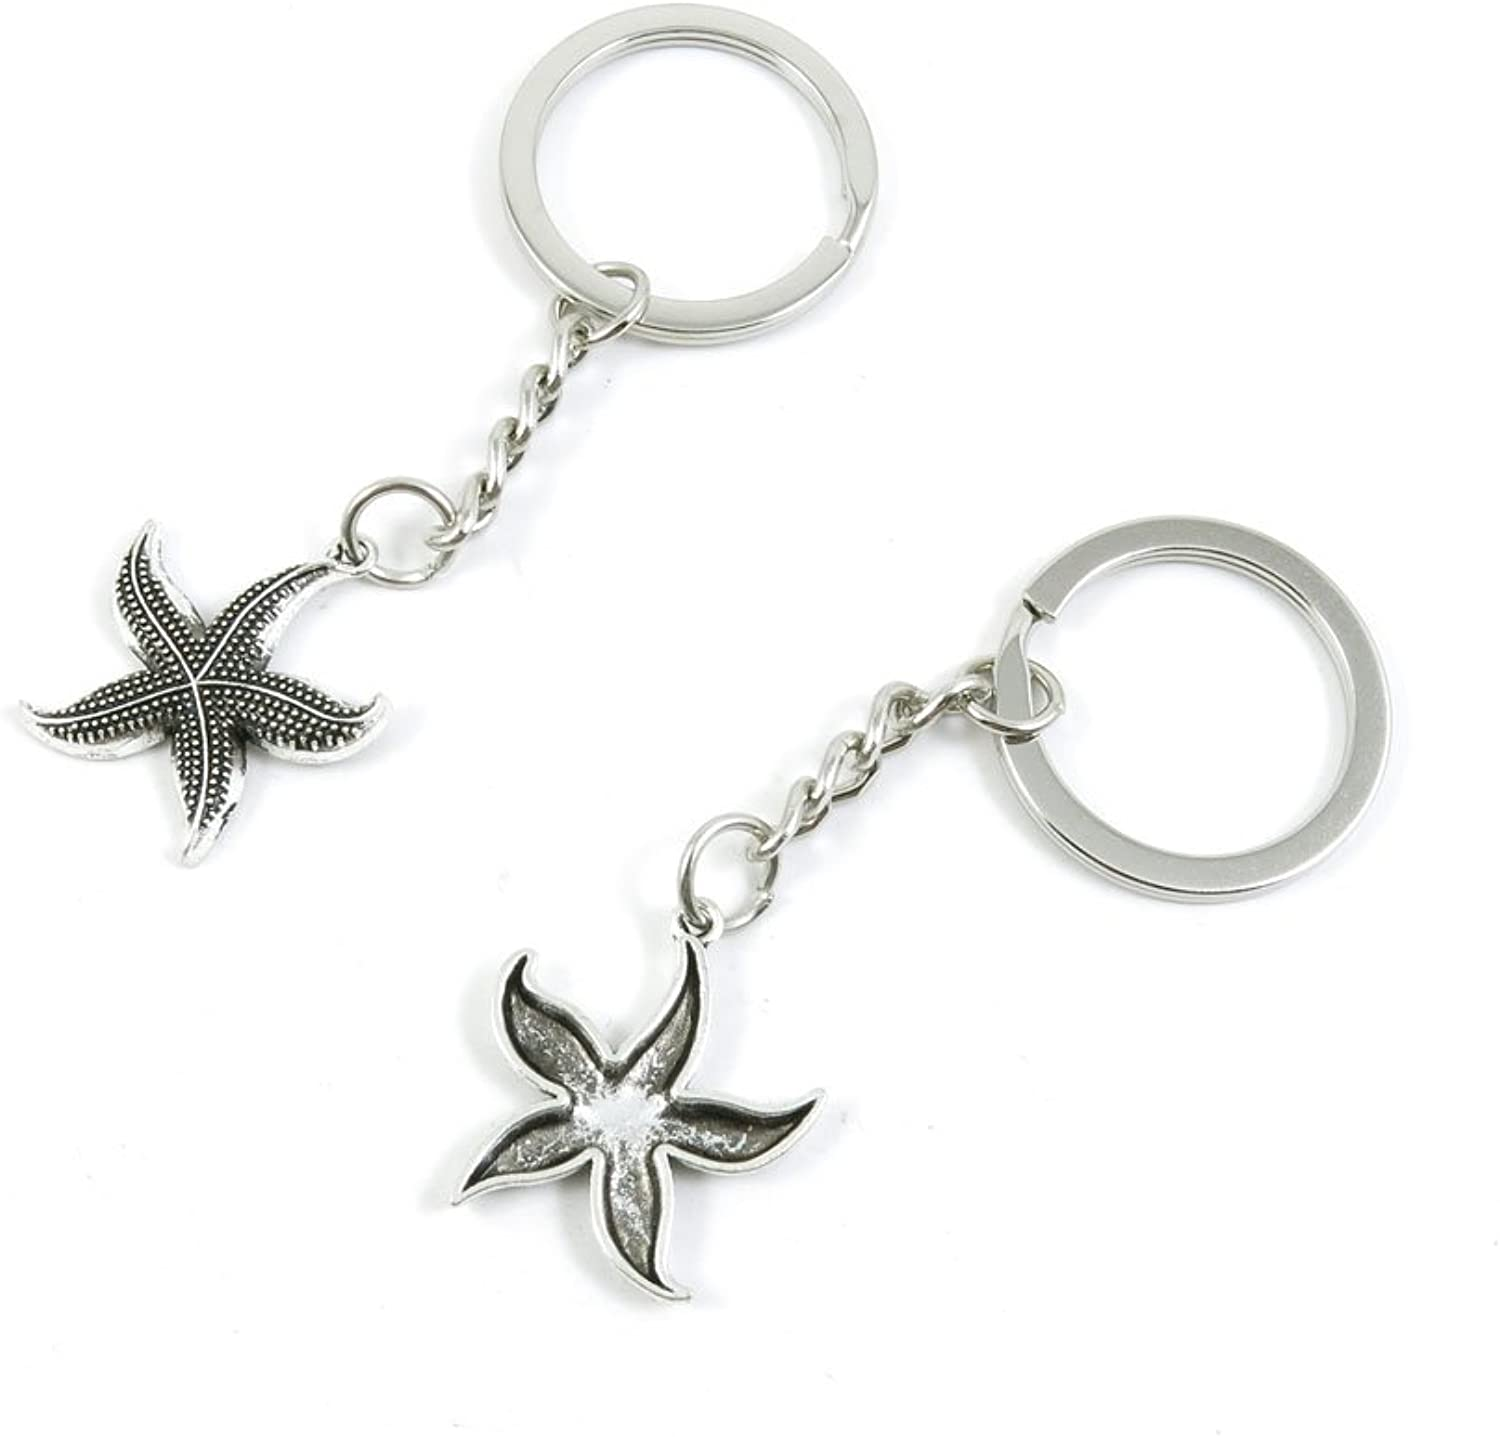 100 Pieces Keychain Keyring Door Car Key Chain Ring Tag Charms Bulk Supply Jewelry Making Clasp Findings M5QP9H Sea Star Starfish